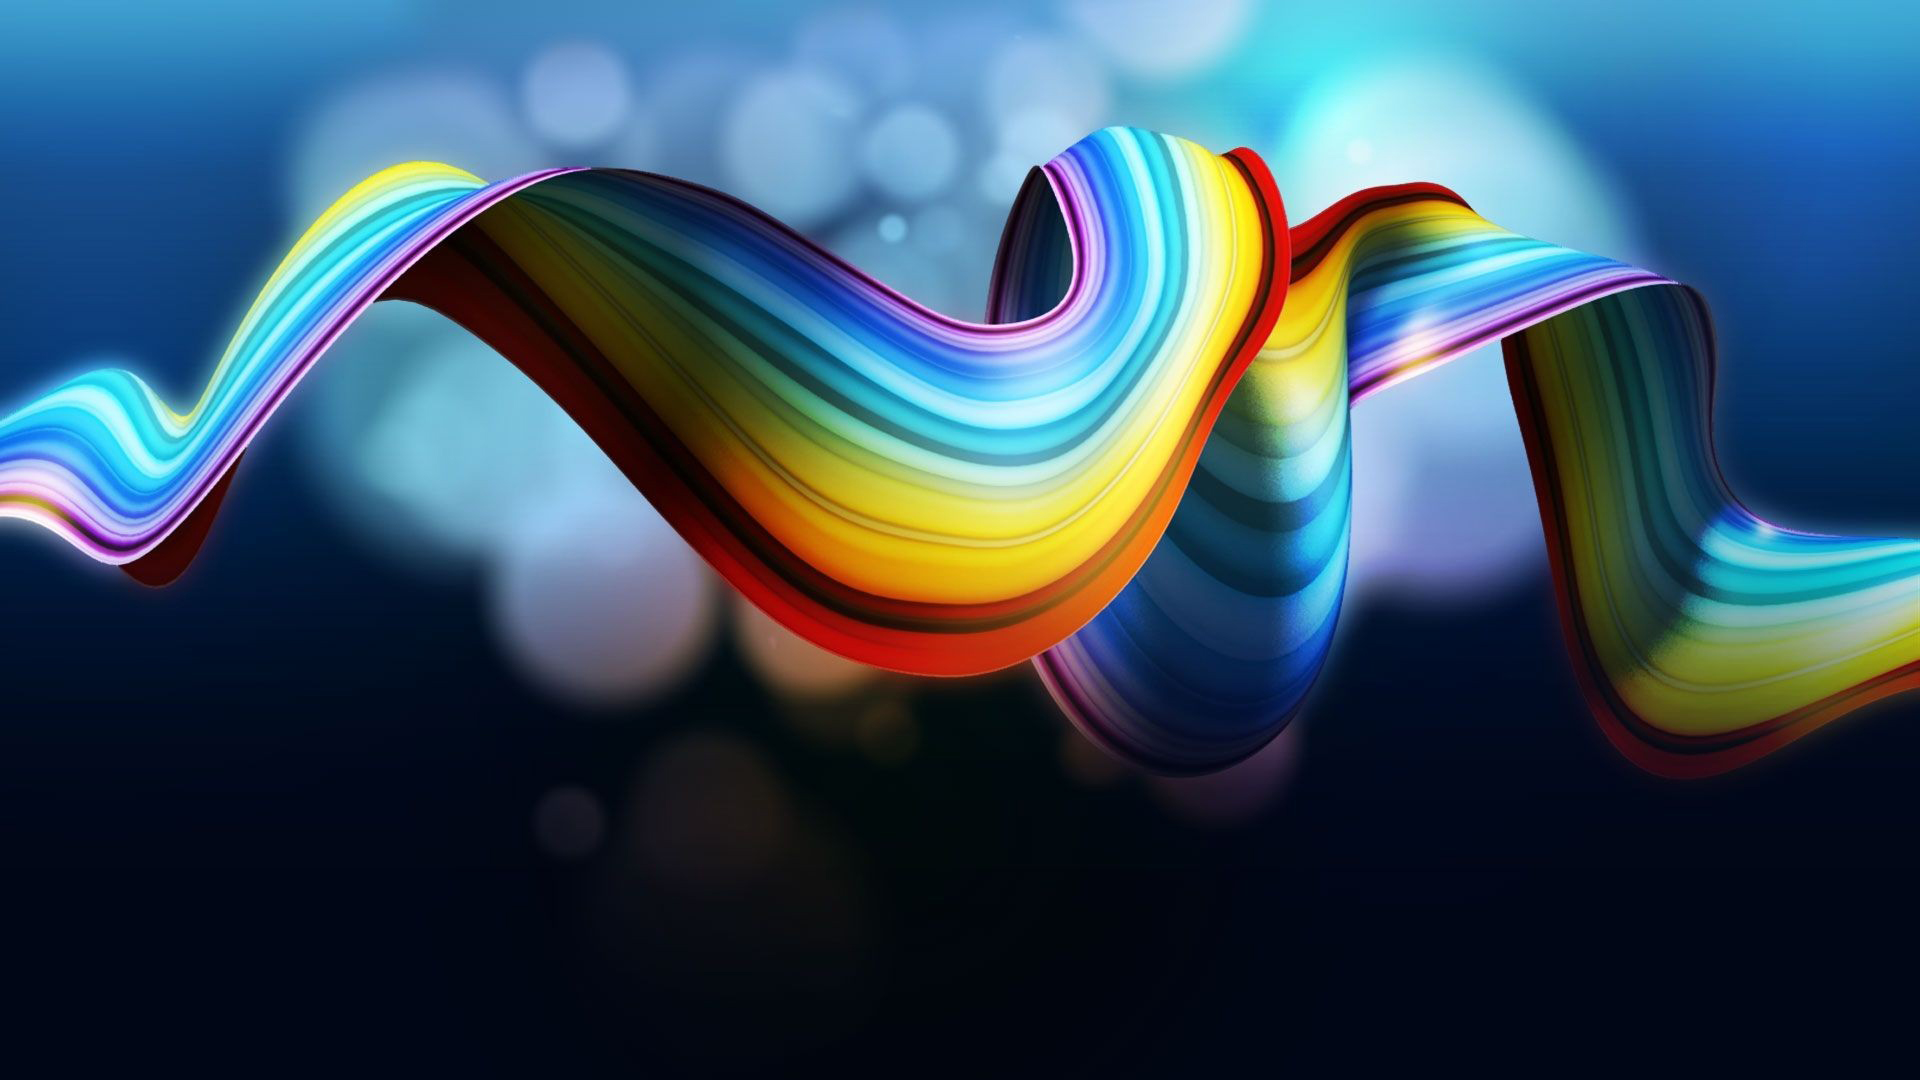 25 hd rainbow wallpapers for The best artist websites